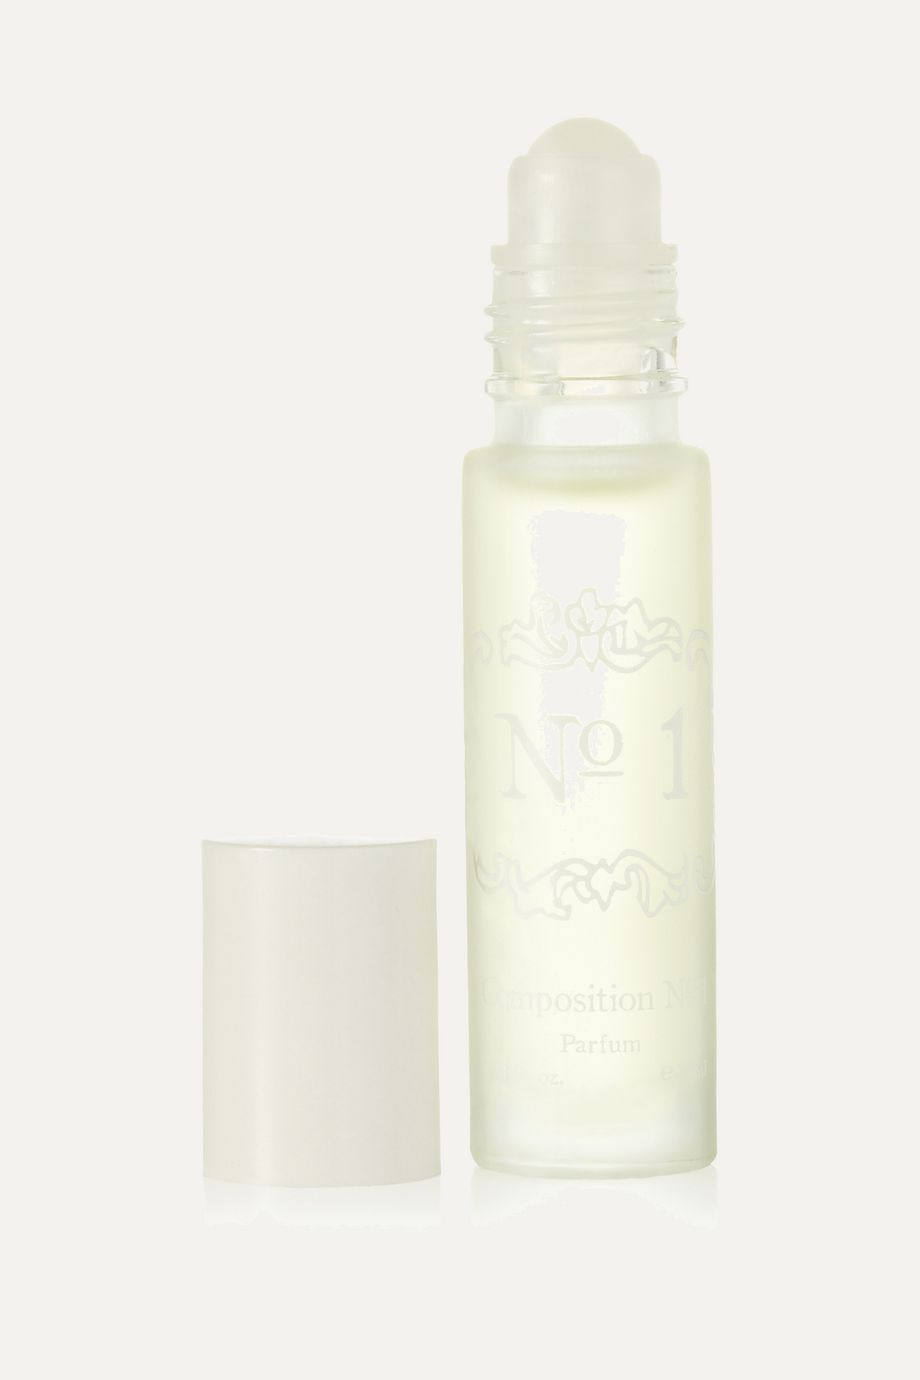 Joya Composition No. 1 Roll-On Parfum - Italian Mandarin, Brazilian Orange & Fresh Quince, 10ml